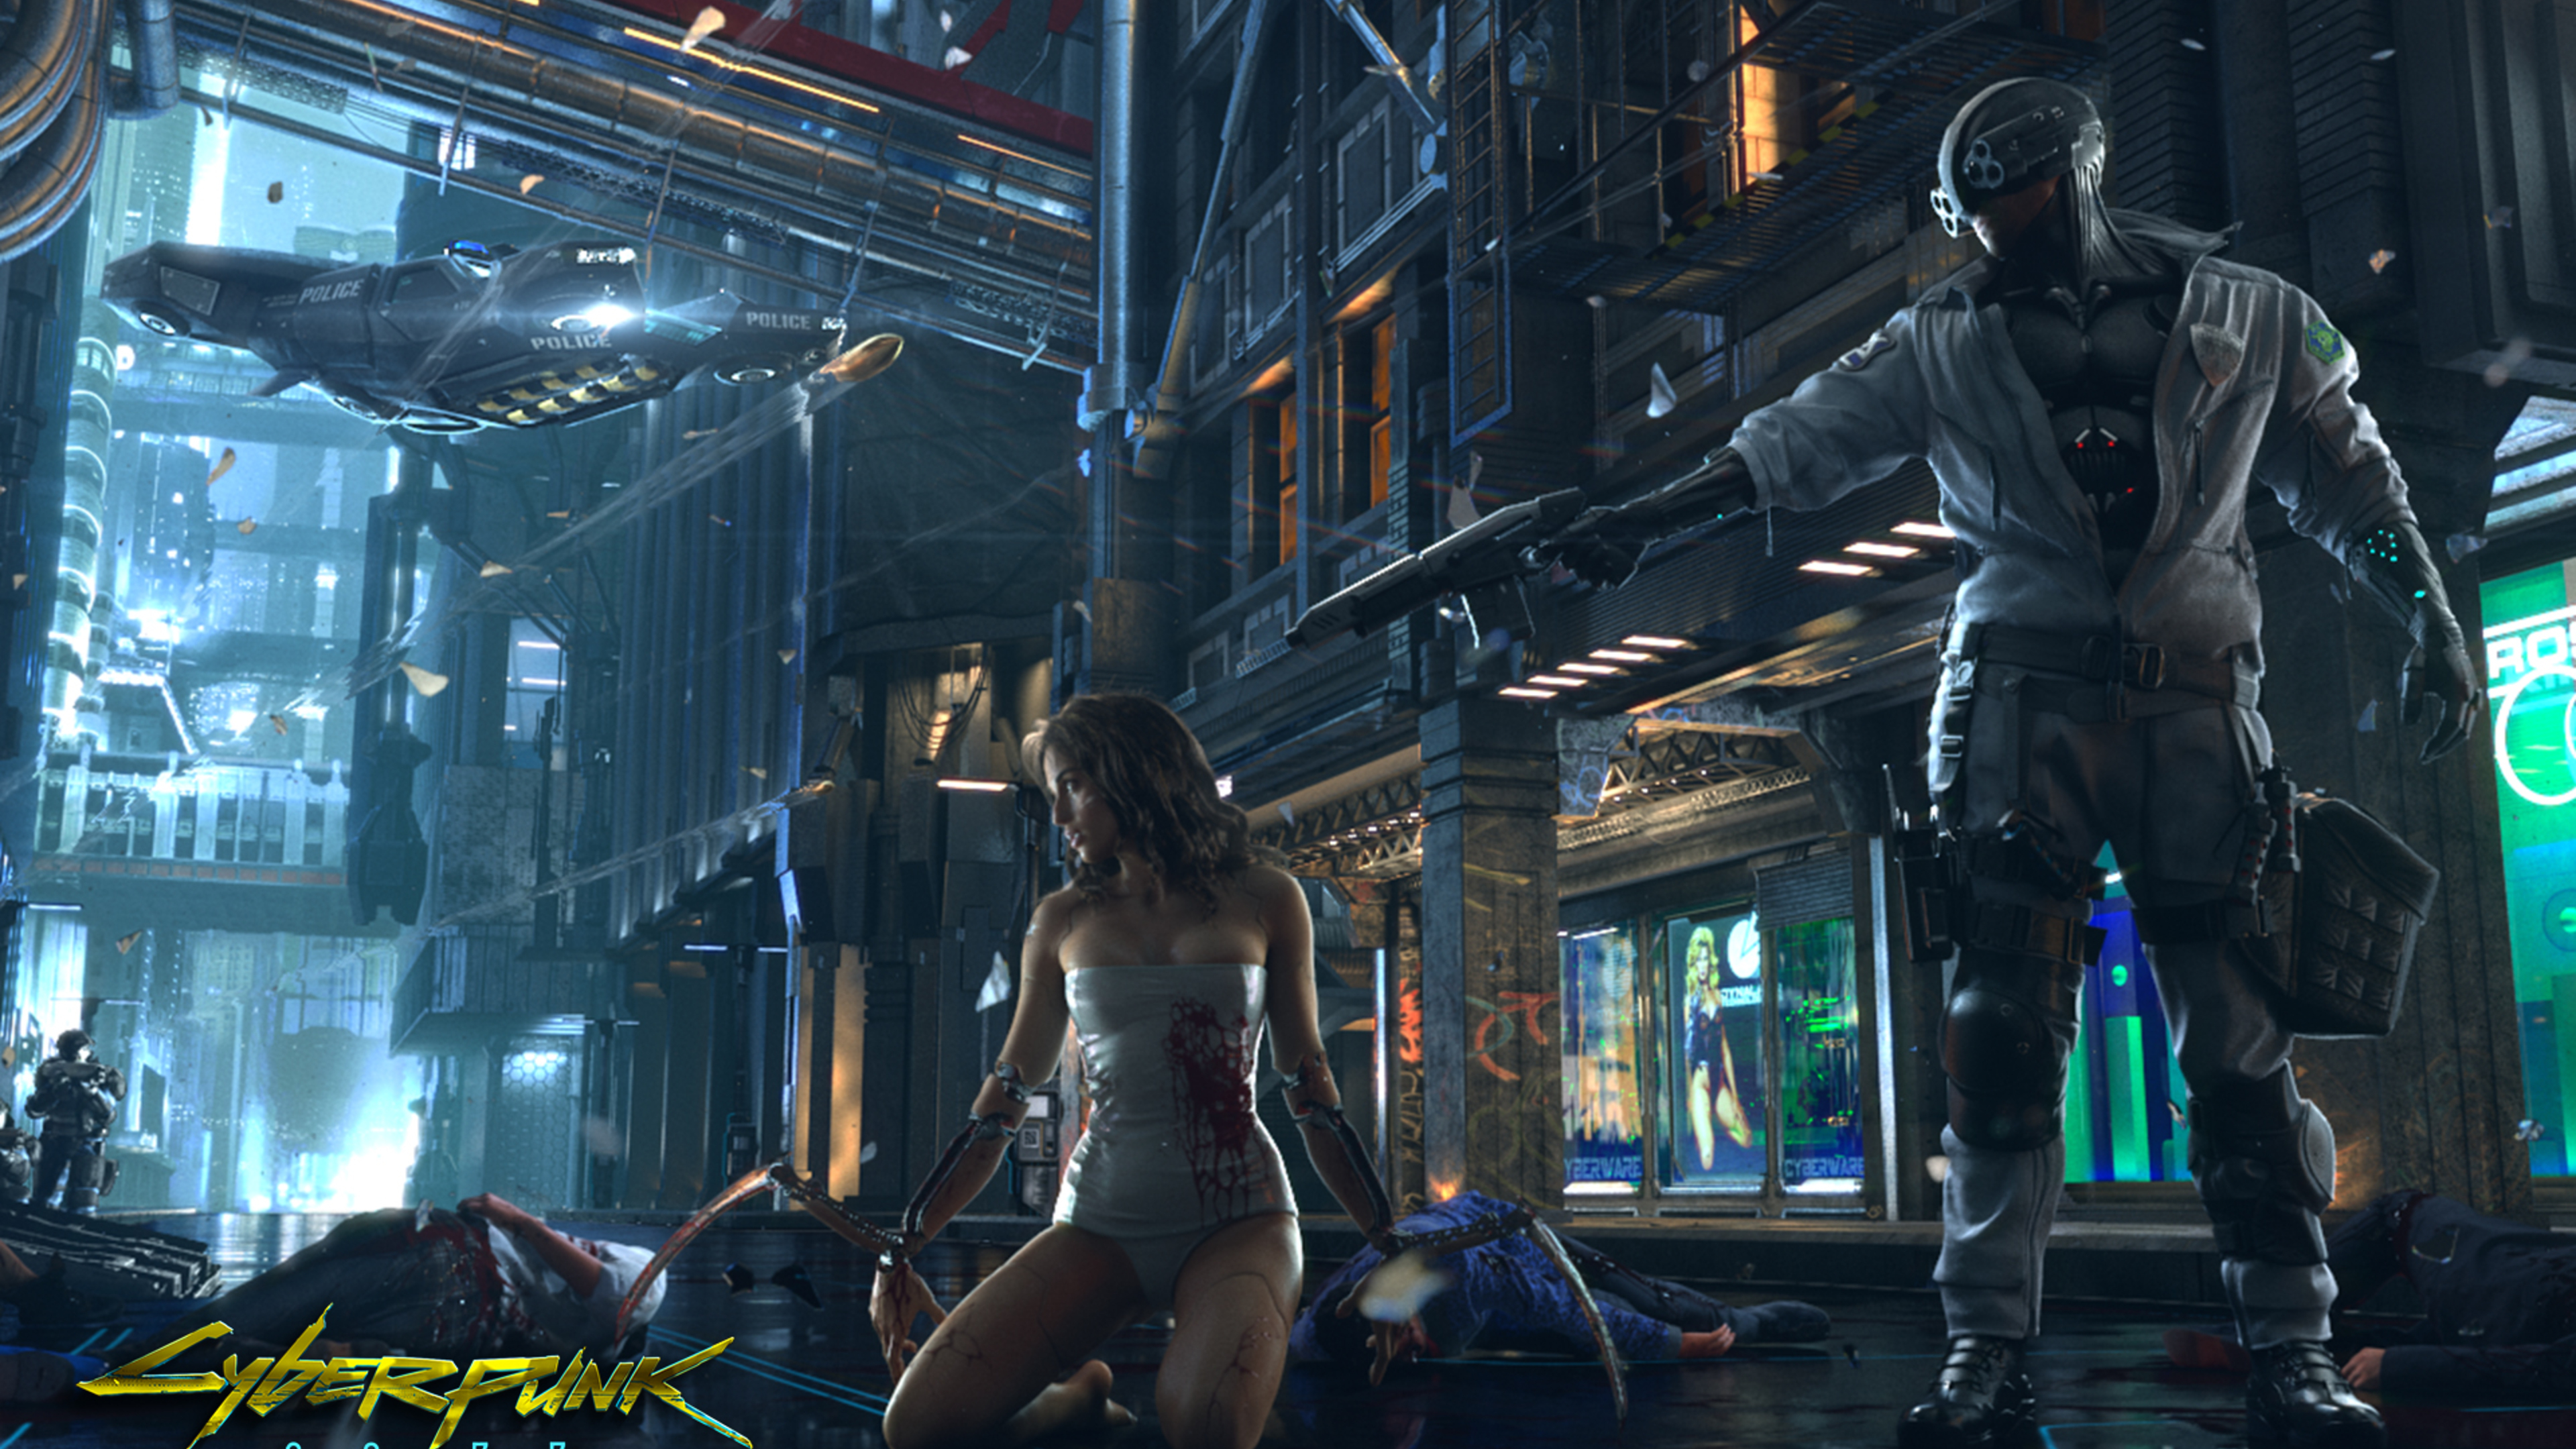 3840x2160 cyberpunk 2077 2017 game 4k hd 4k wallpapers images backgrounds photos and pictures - Cyberpunk 2077 wallpaper 4k ...